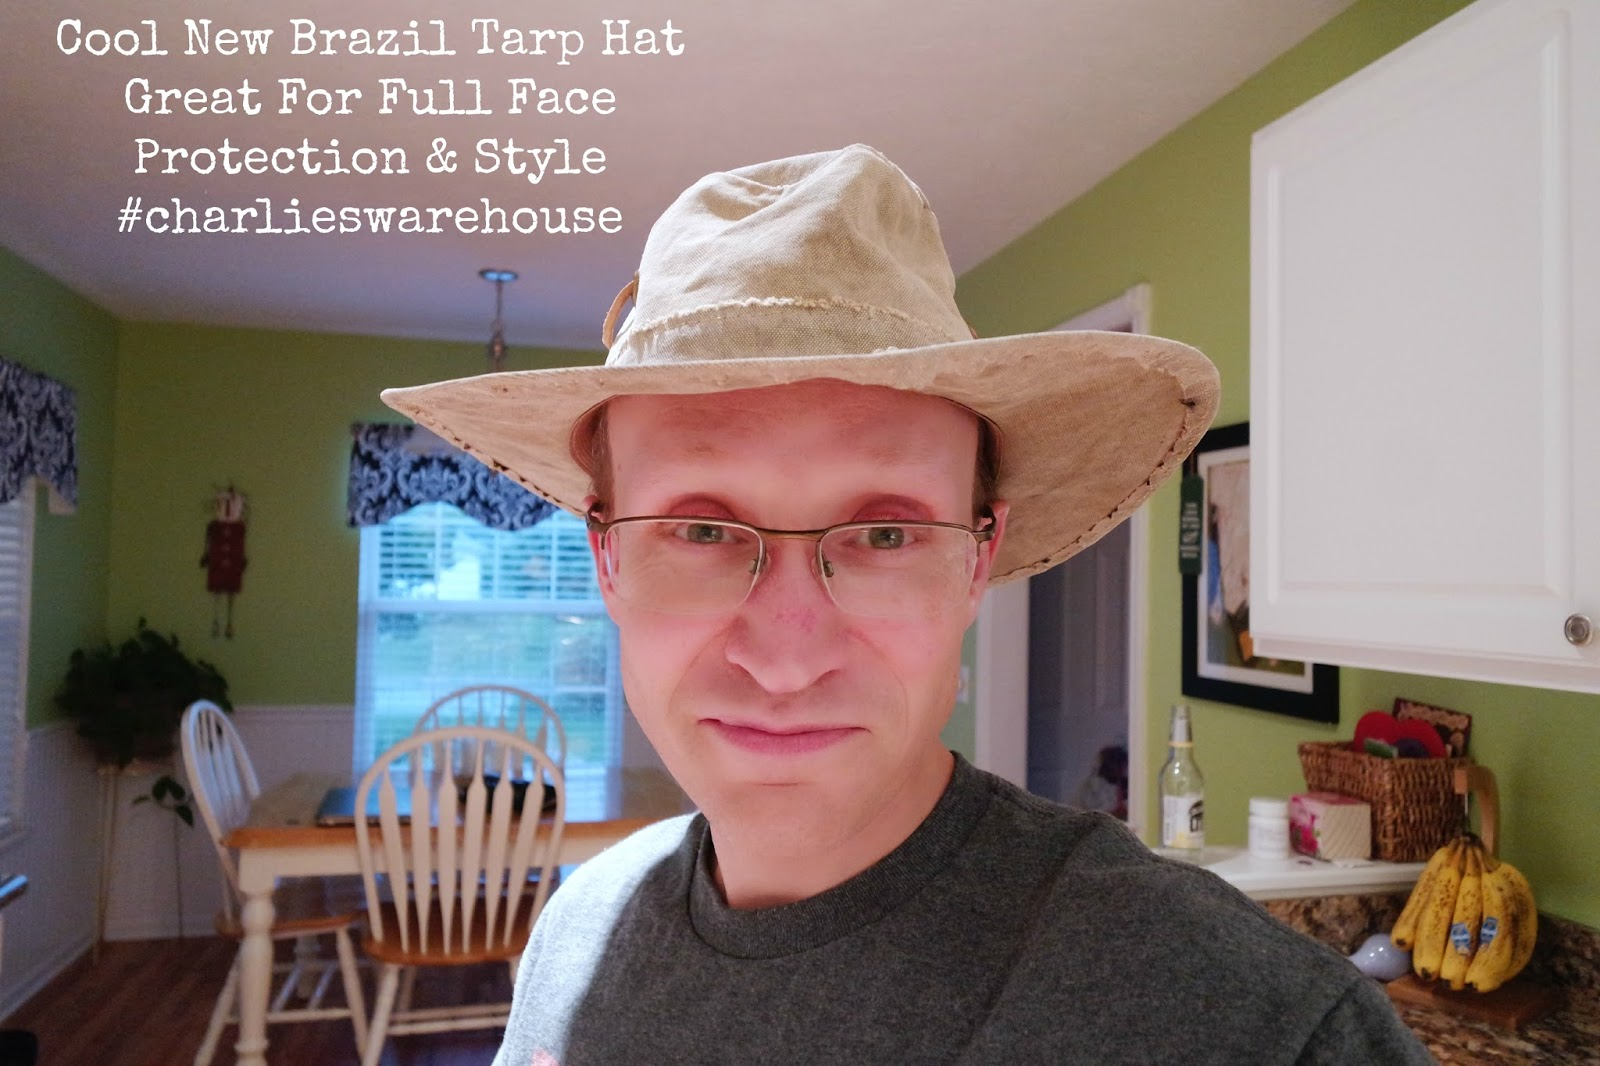 Real Deal Brazil Tarp Hat Gives You Style   Protection  charlieswarehouse 624197c224b